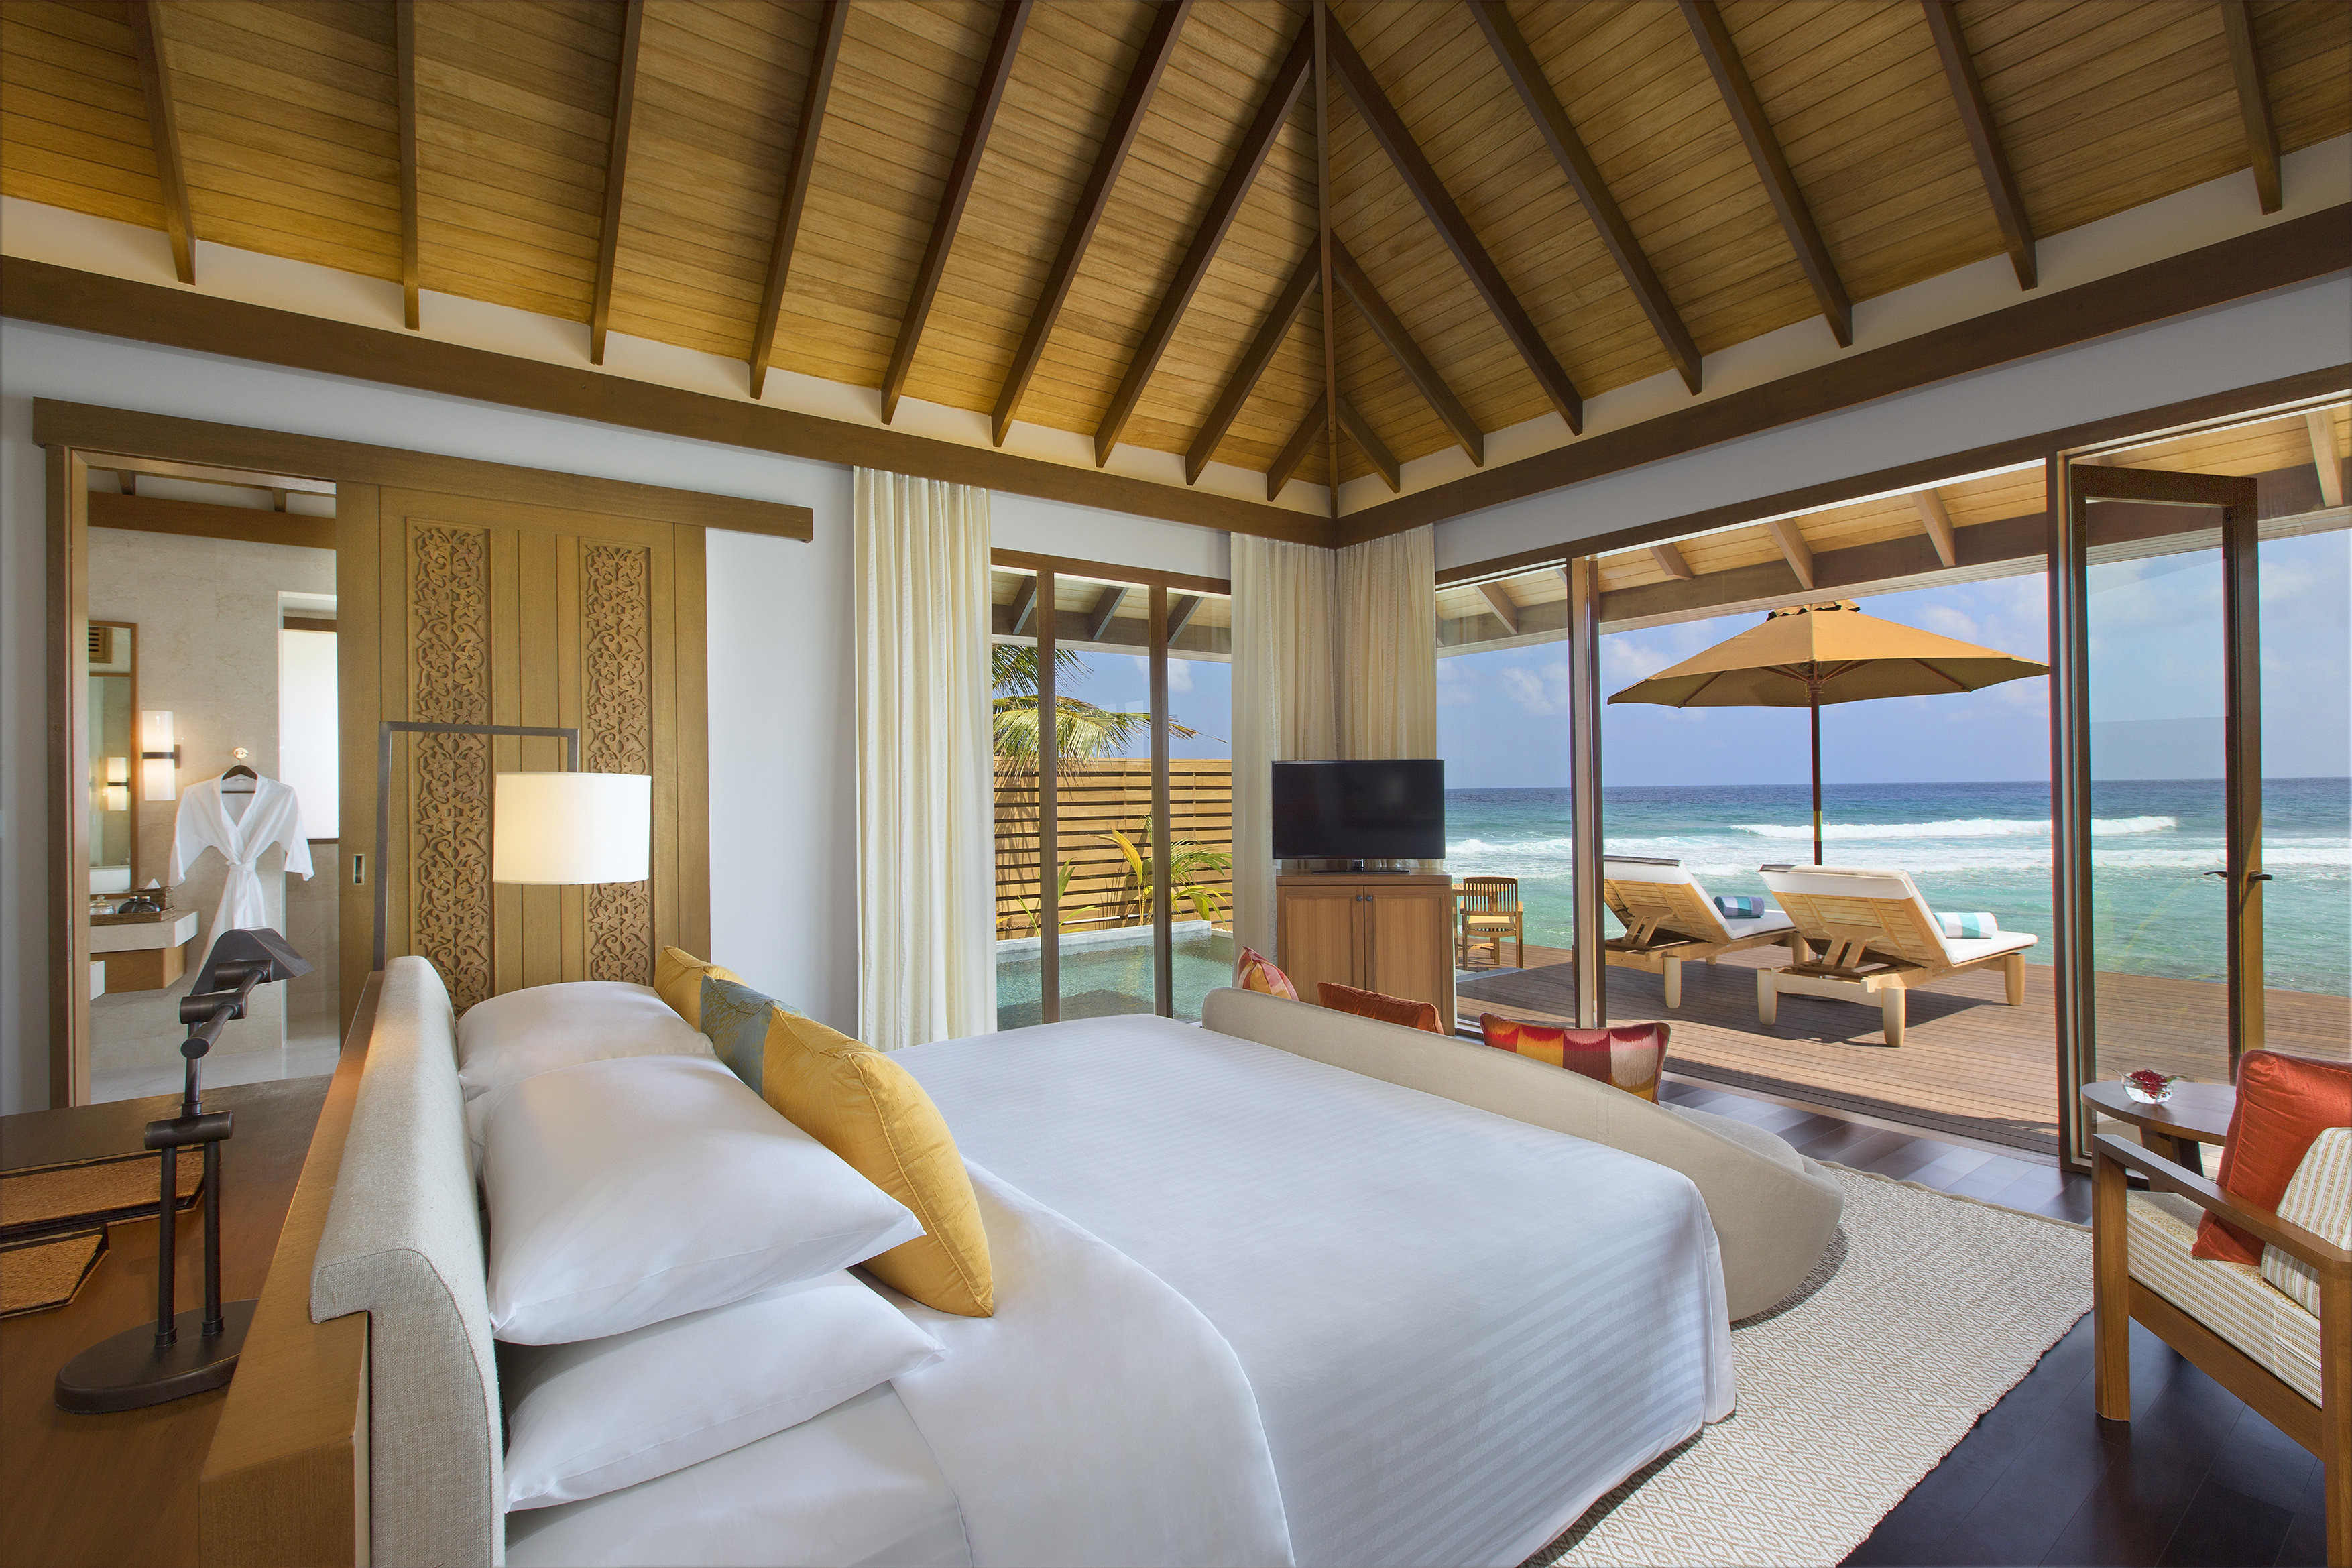 61912082-H1-Ocean_Pool_Bungalow_Bedroom_